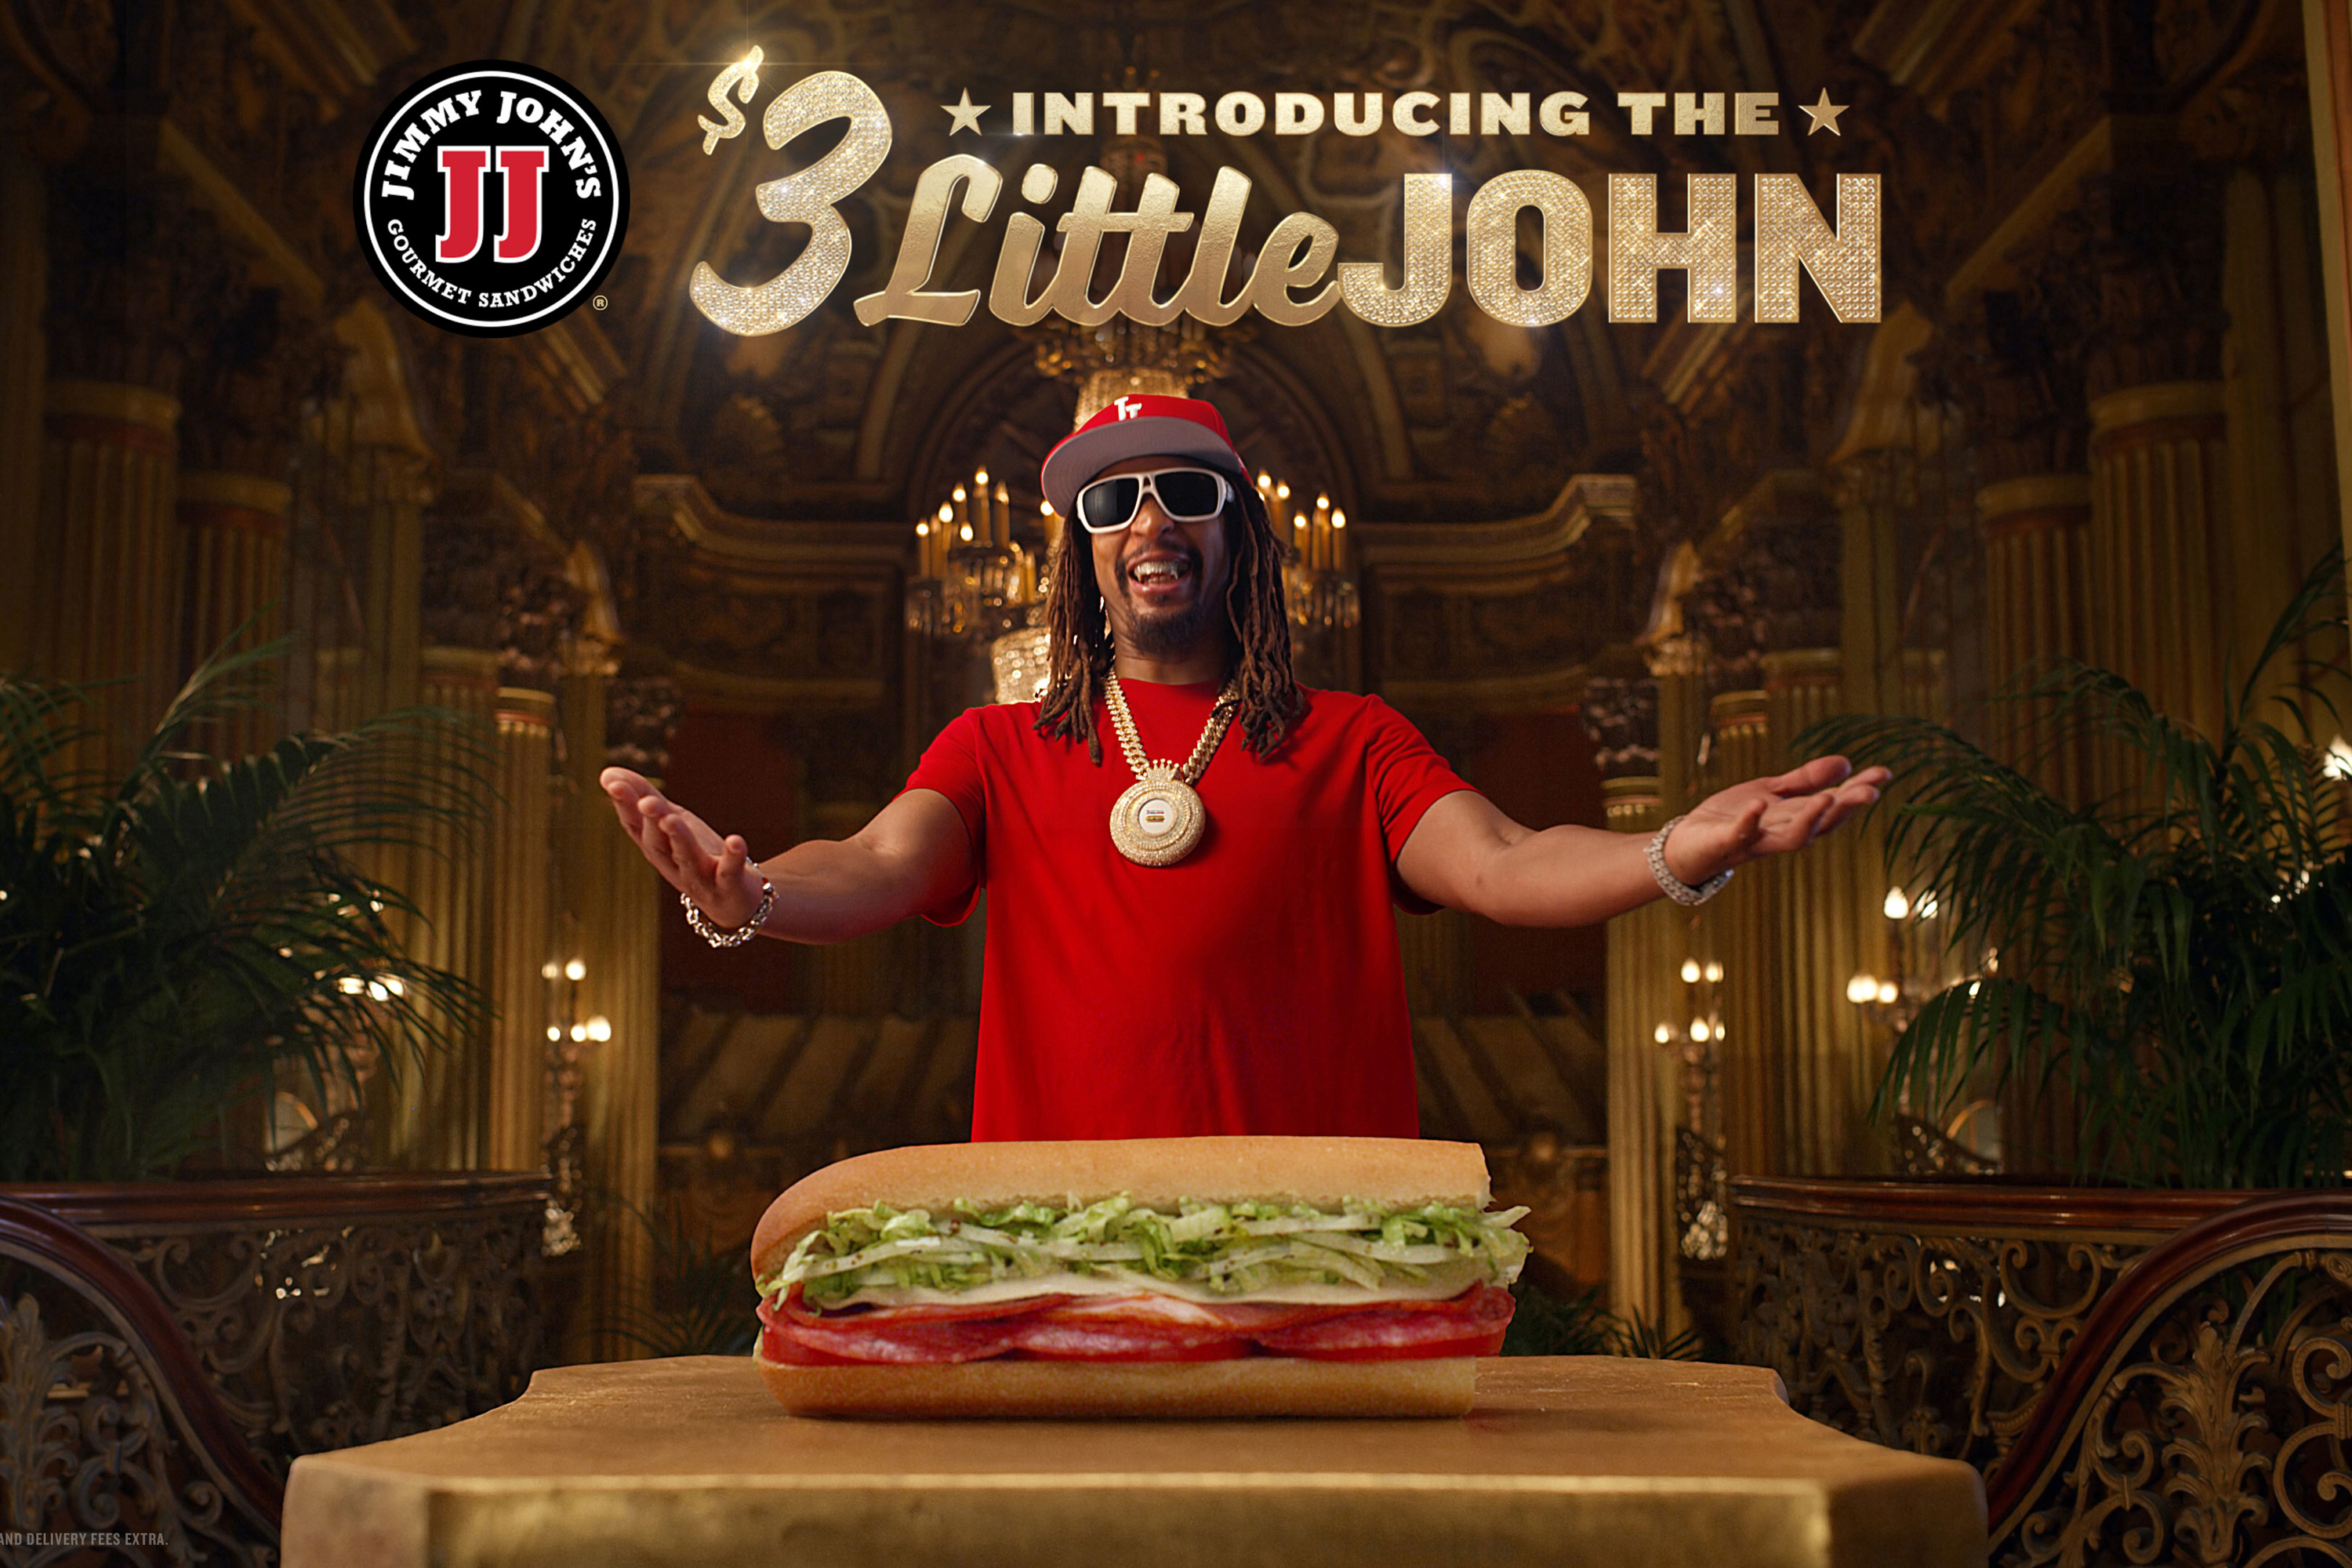 Jimmy John's hires Lil Jon to promote its Little John sandwich